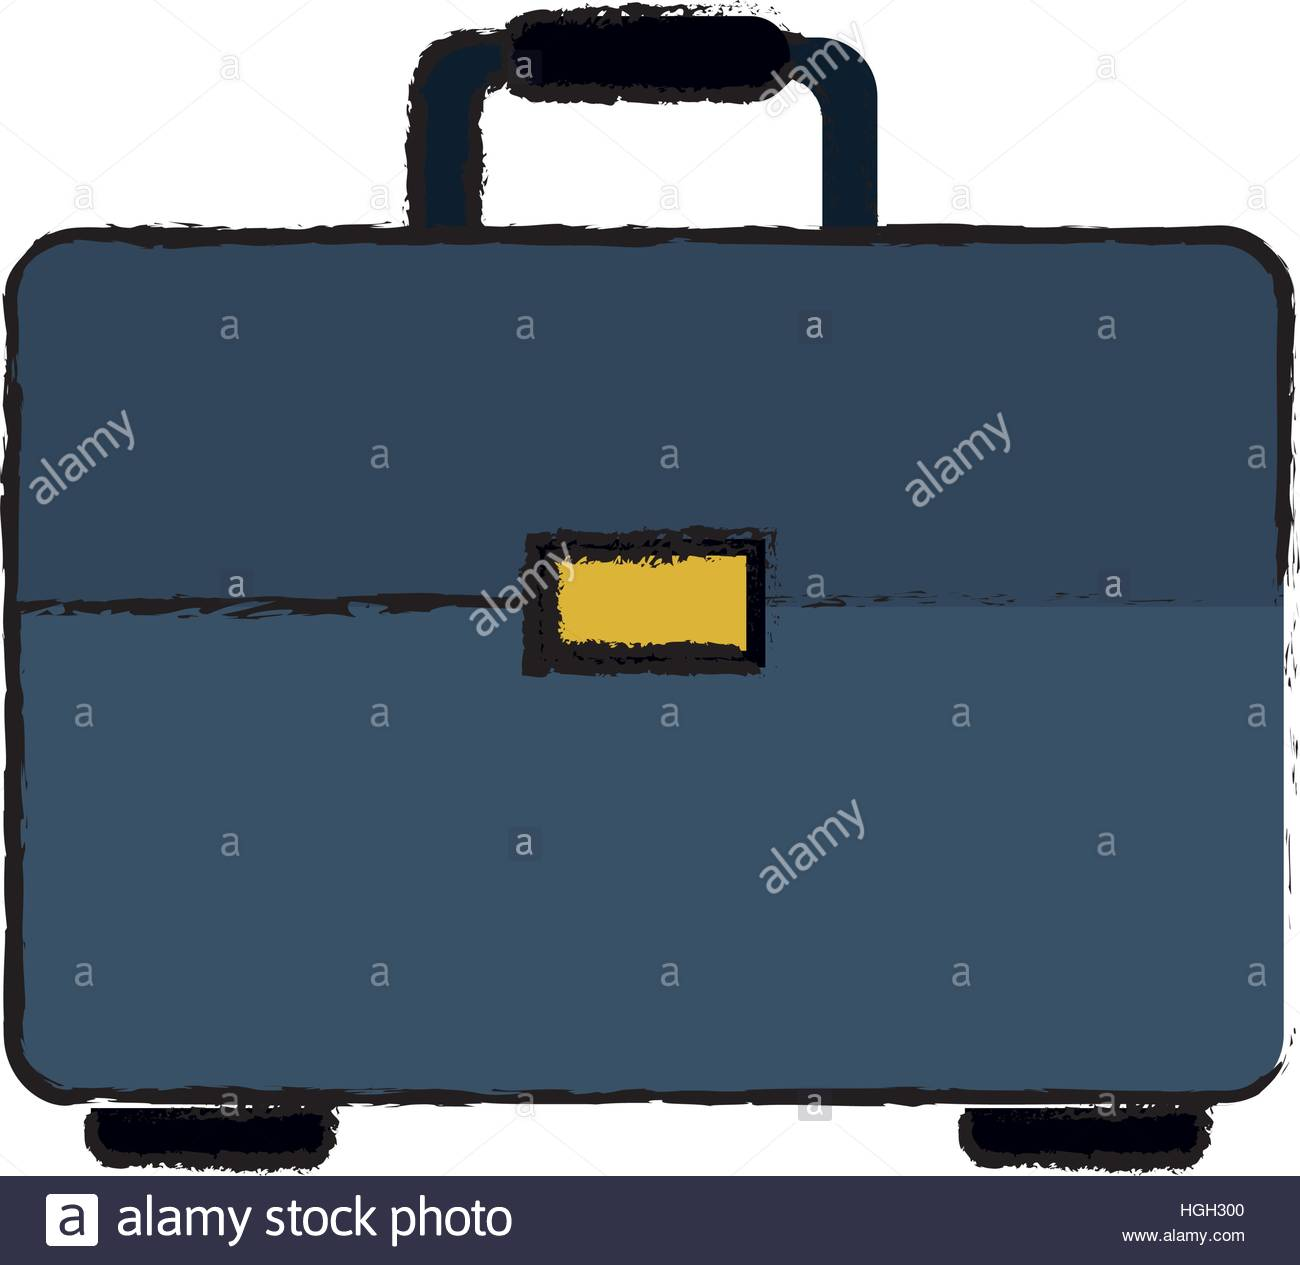 1300x1265 Drawing Portfolio Suitcase Business Document Stock Vector Art